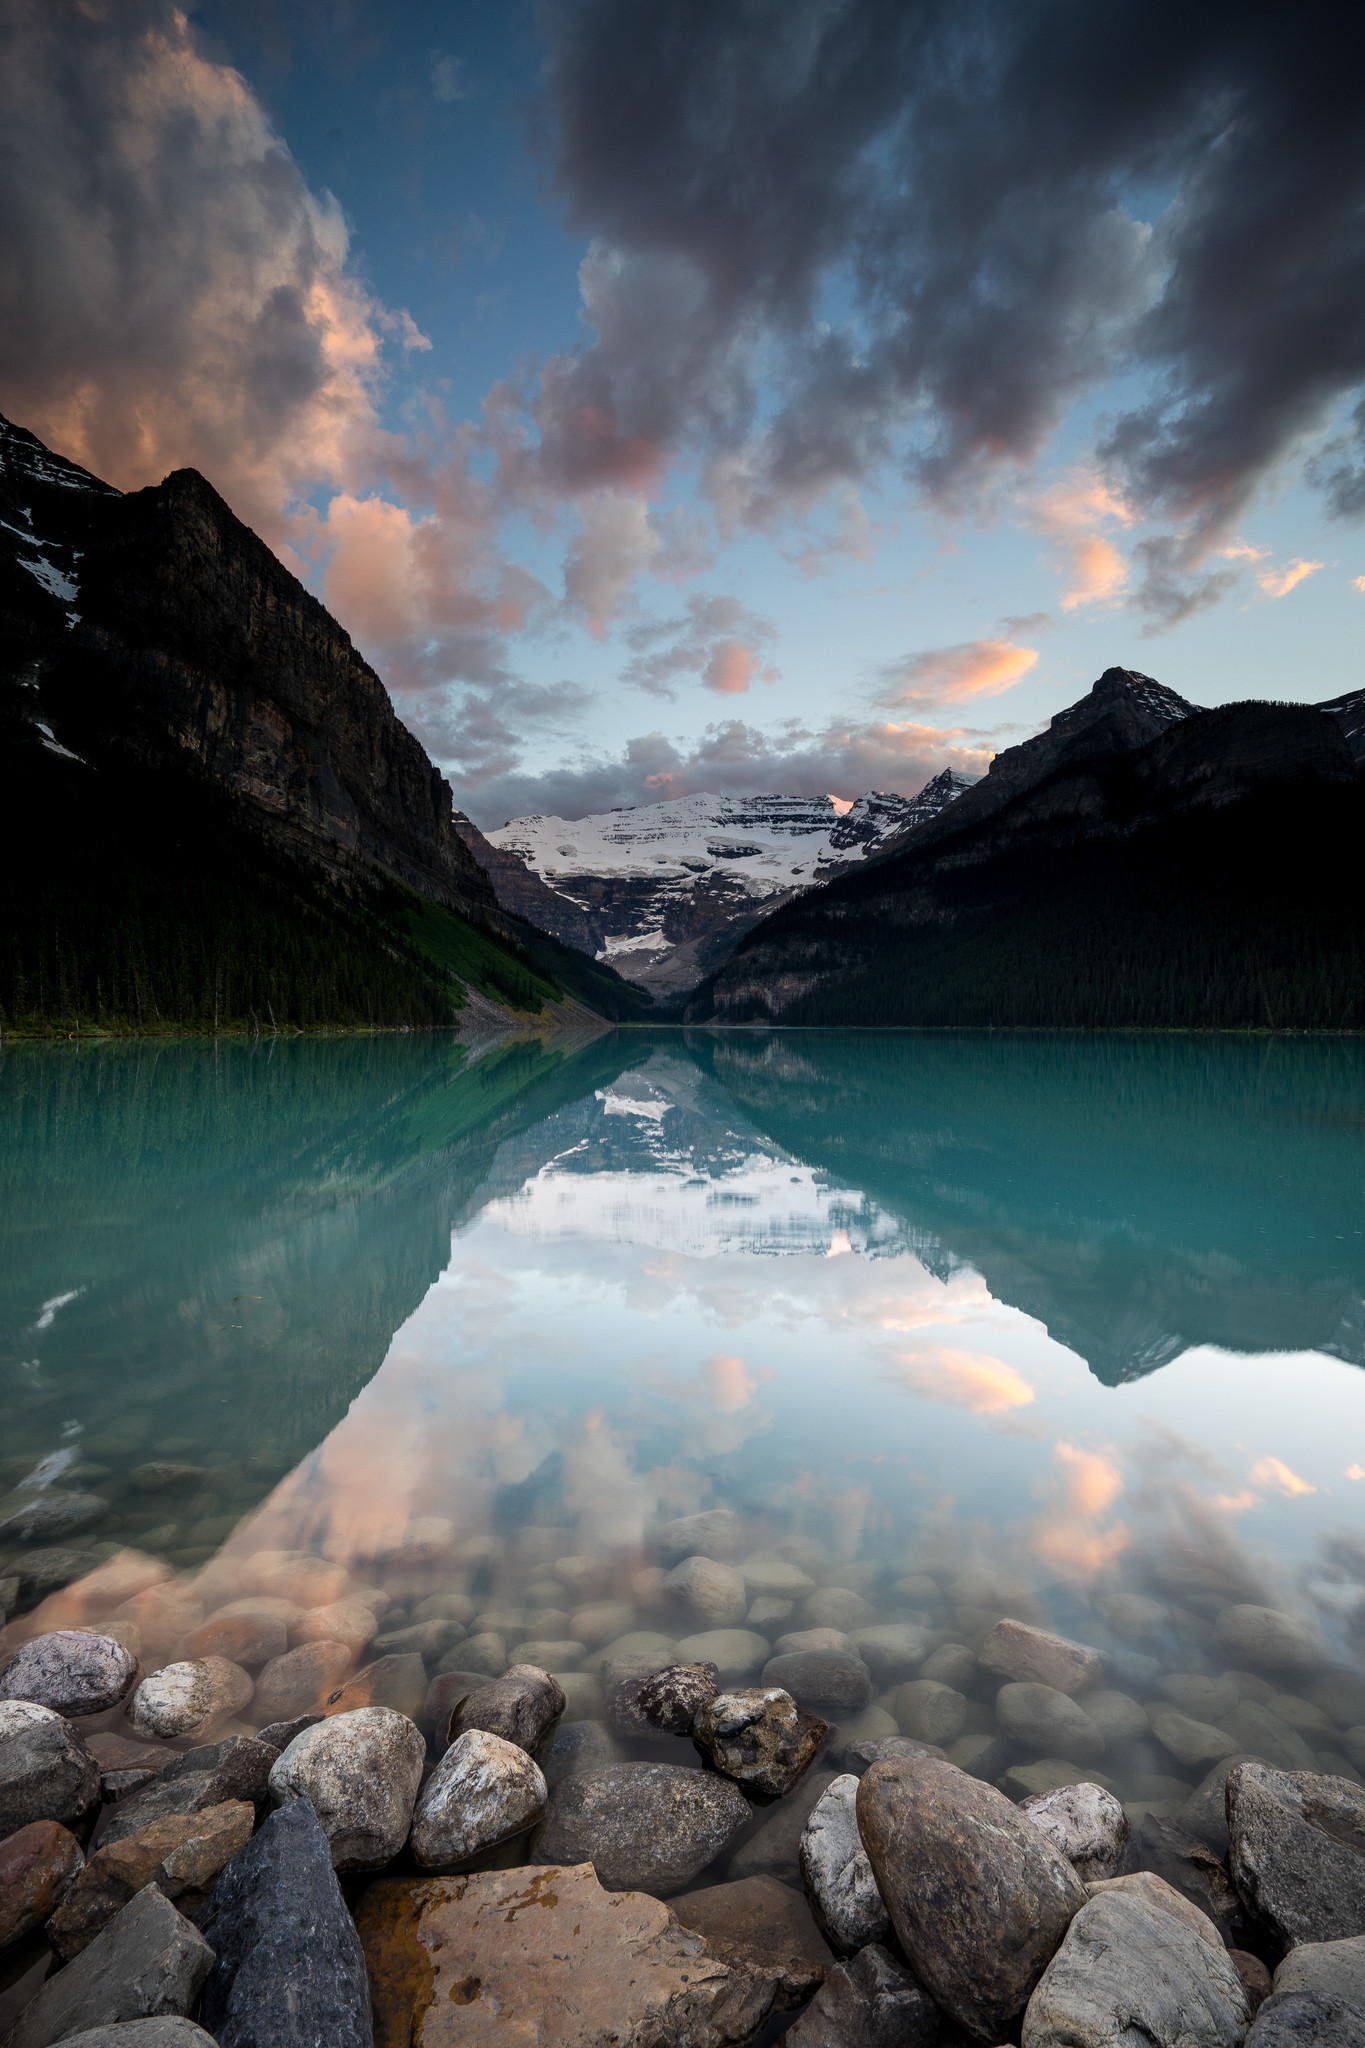 Lake Louise, Banff National Park, Canadian Rockies, Alberta, Canada.